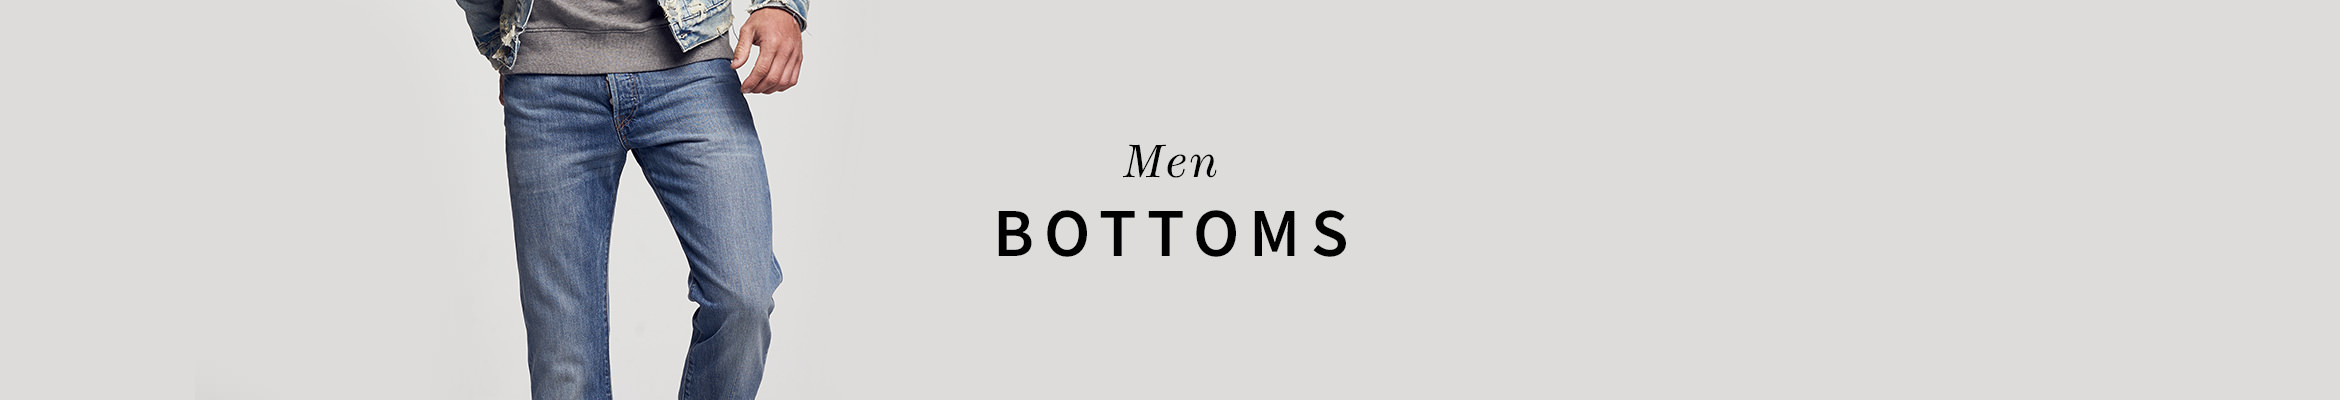 Aw16_bottoms_m_en